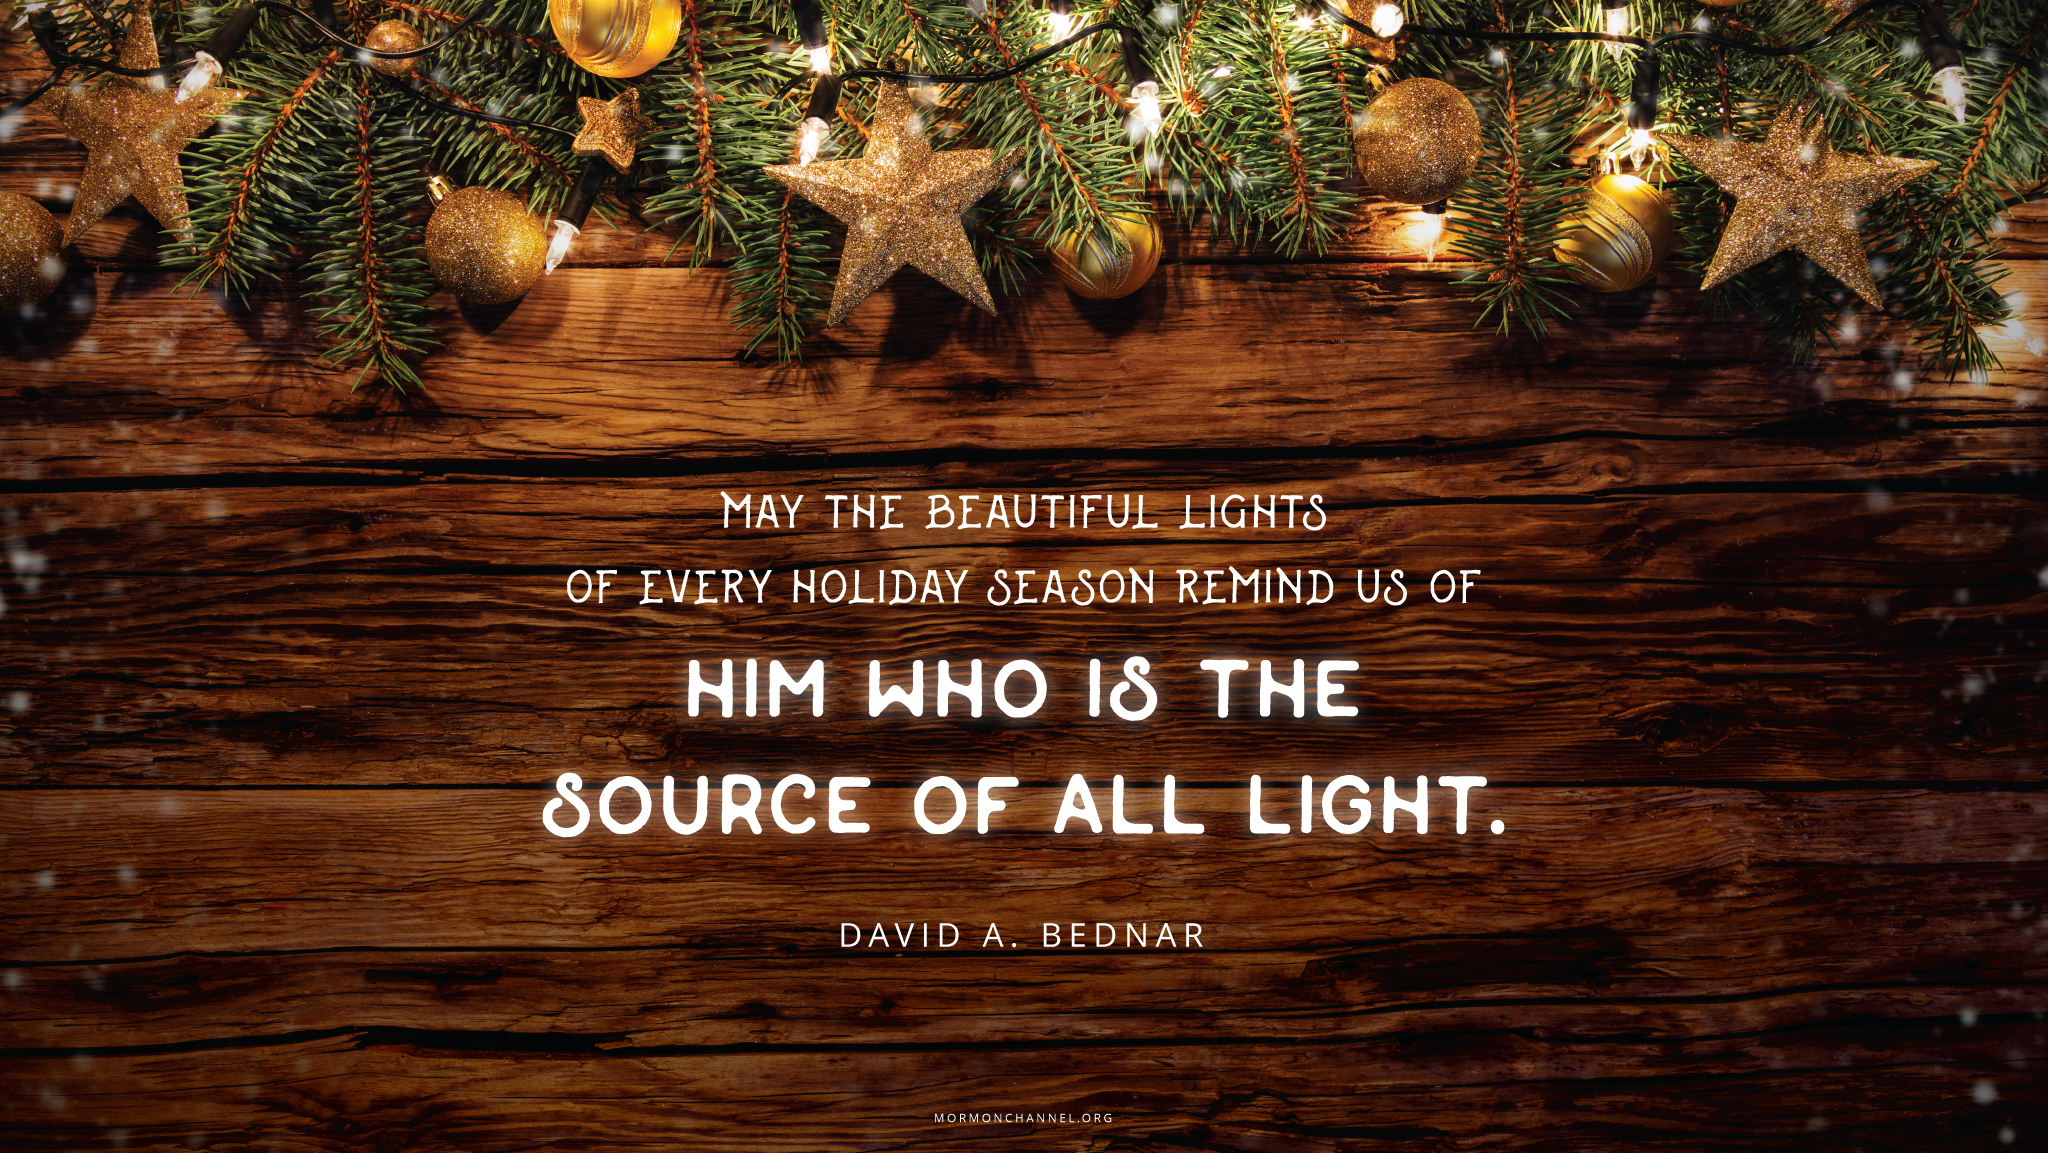 25 Best Christmas Quotes On Pinterest: Daily Quote: May The Lights Of The Season Remind Us